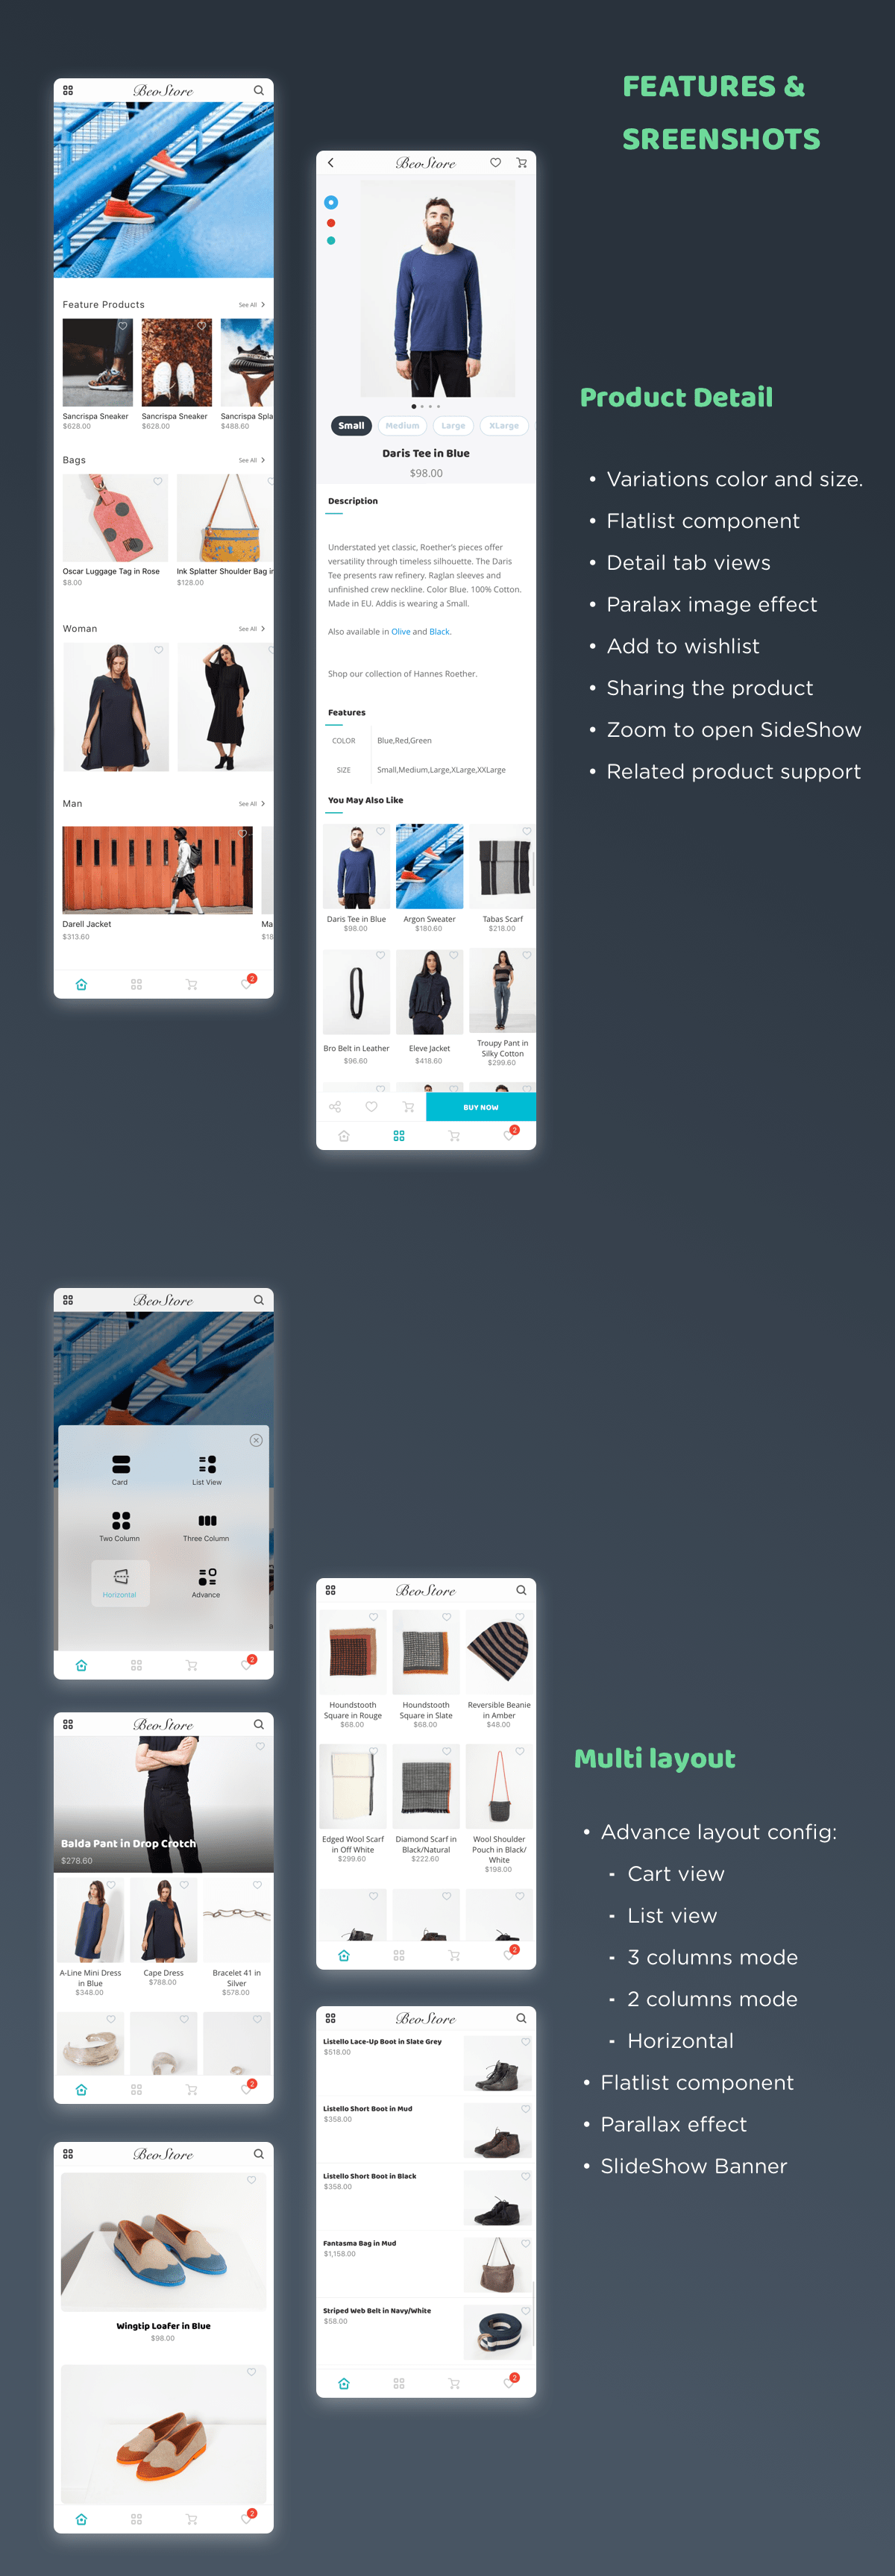 Mstore Shopify - Complete React Native template for e-commerce - 7